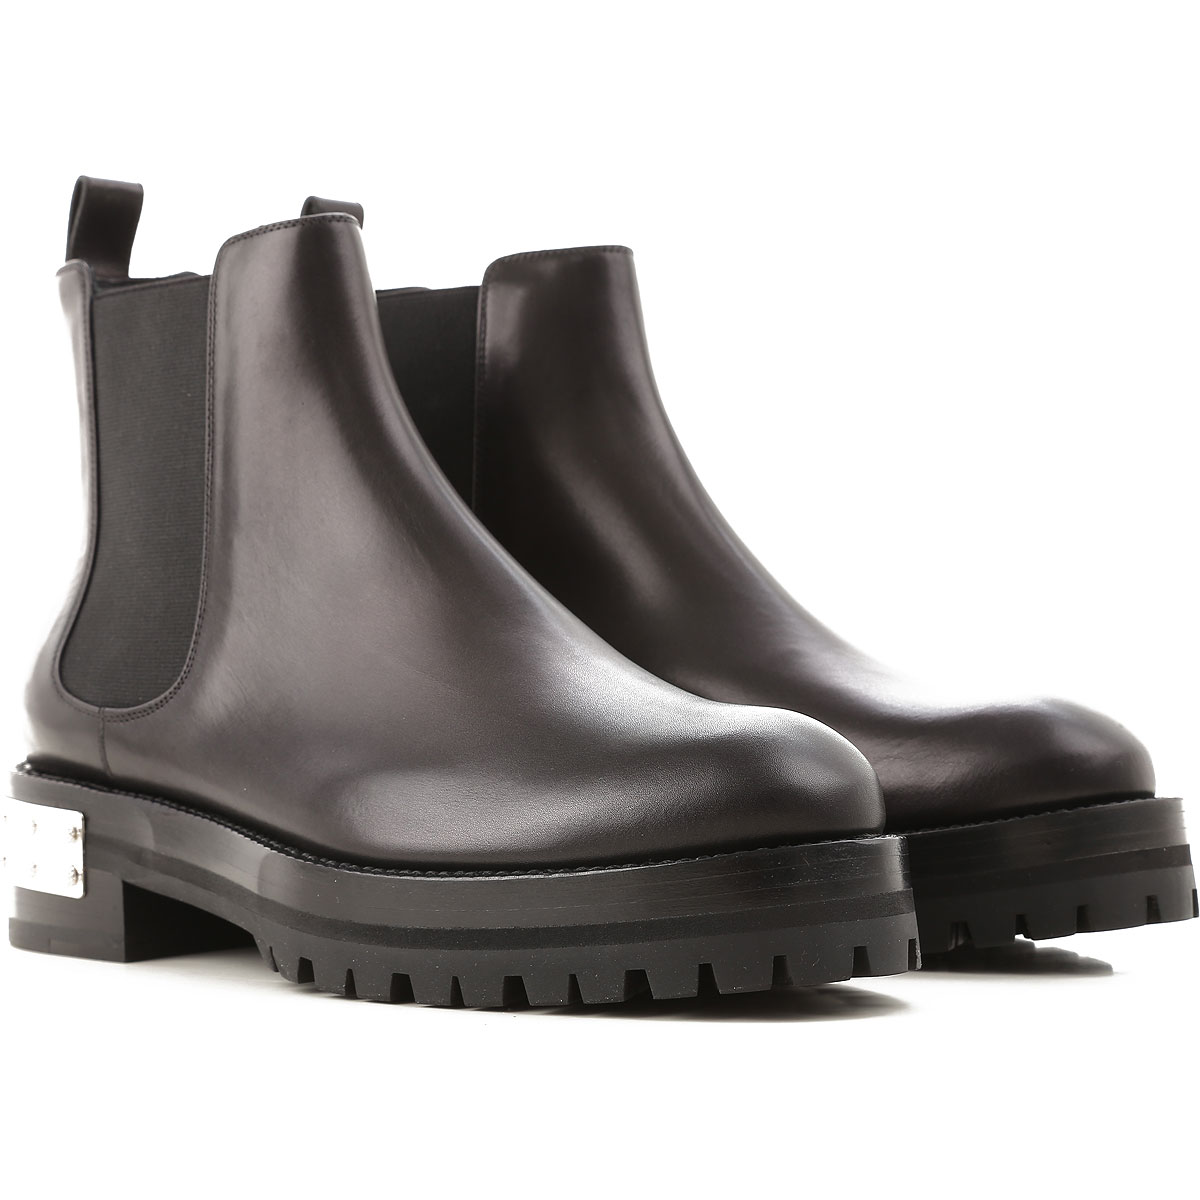 Alexander McQueen Chelsea Boots for Women in Outlet Black USA - GOOFASH